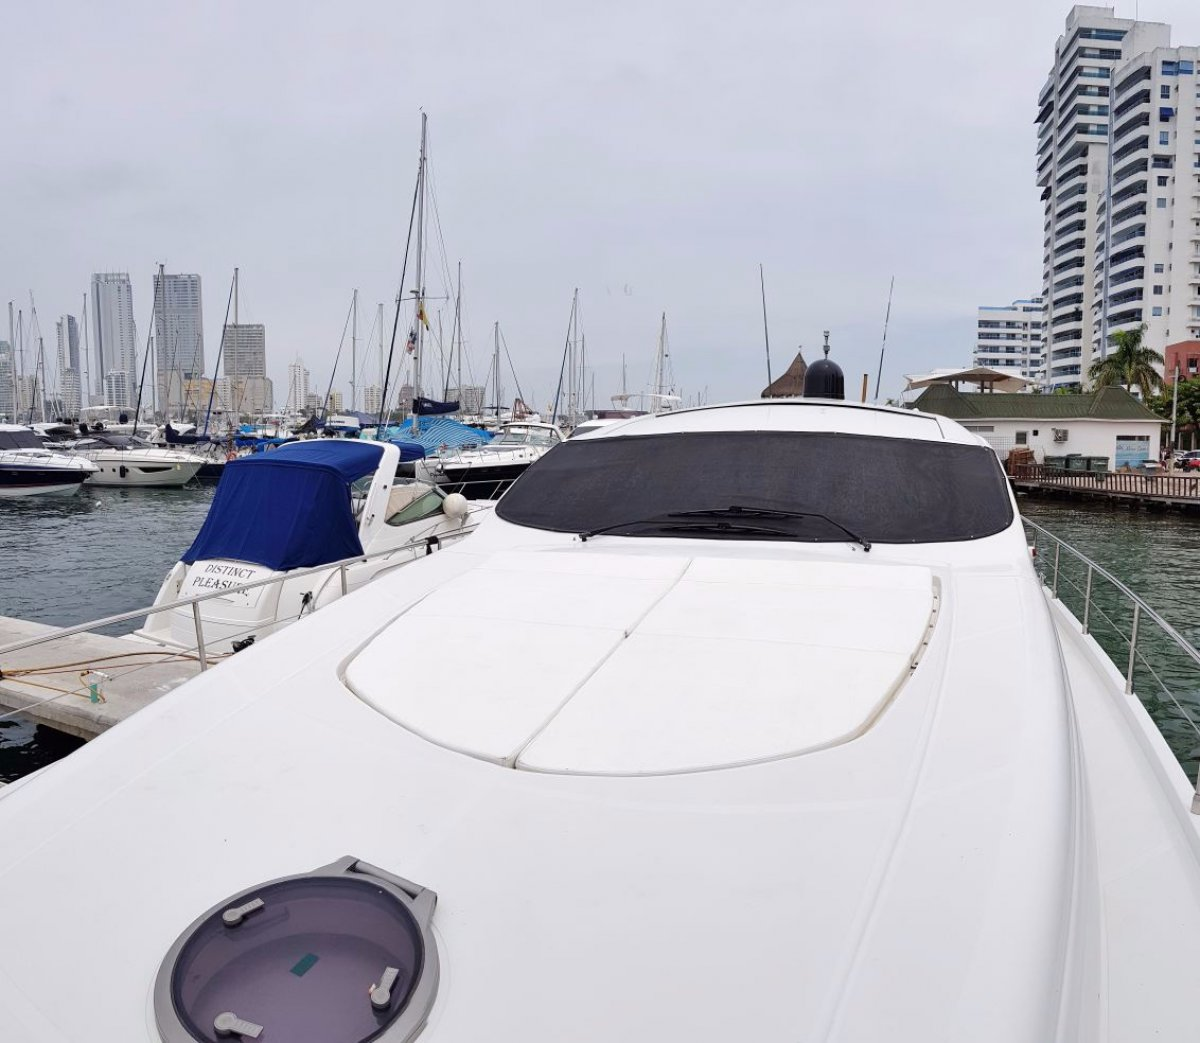 Pershing 62 2007 Pershing 62':2007 PERSHING 62 FOR SALE